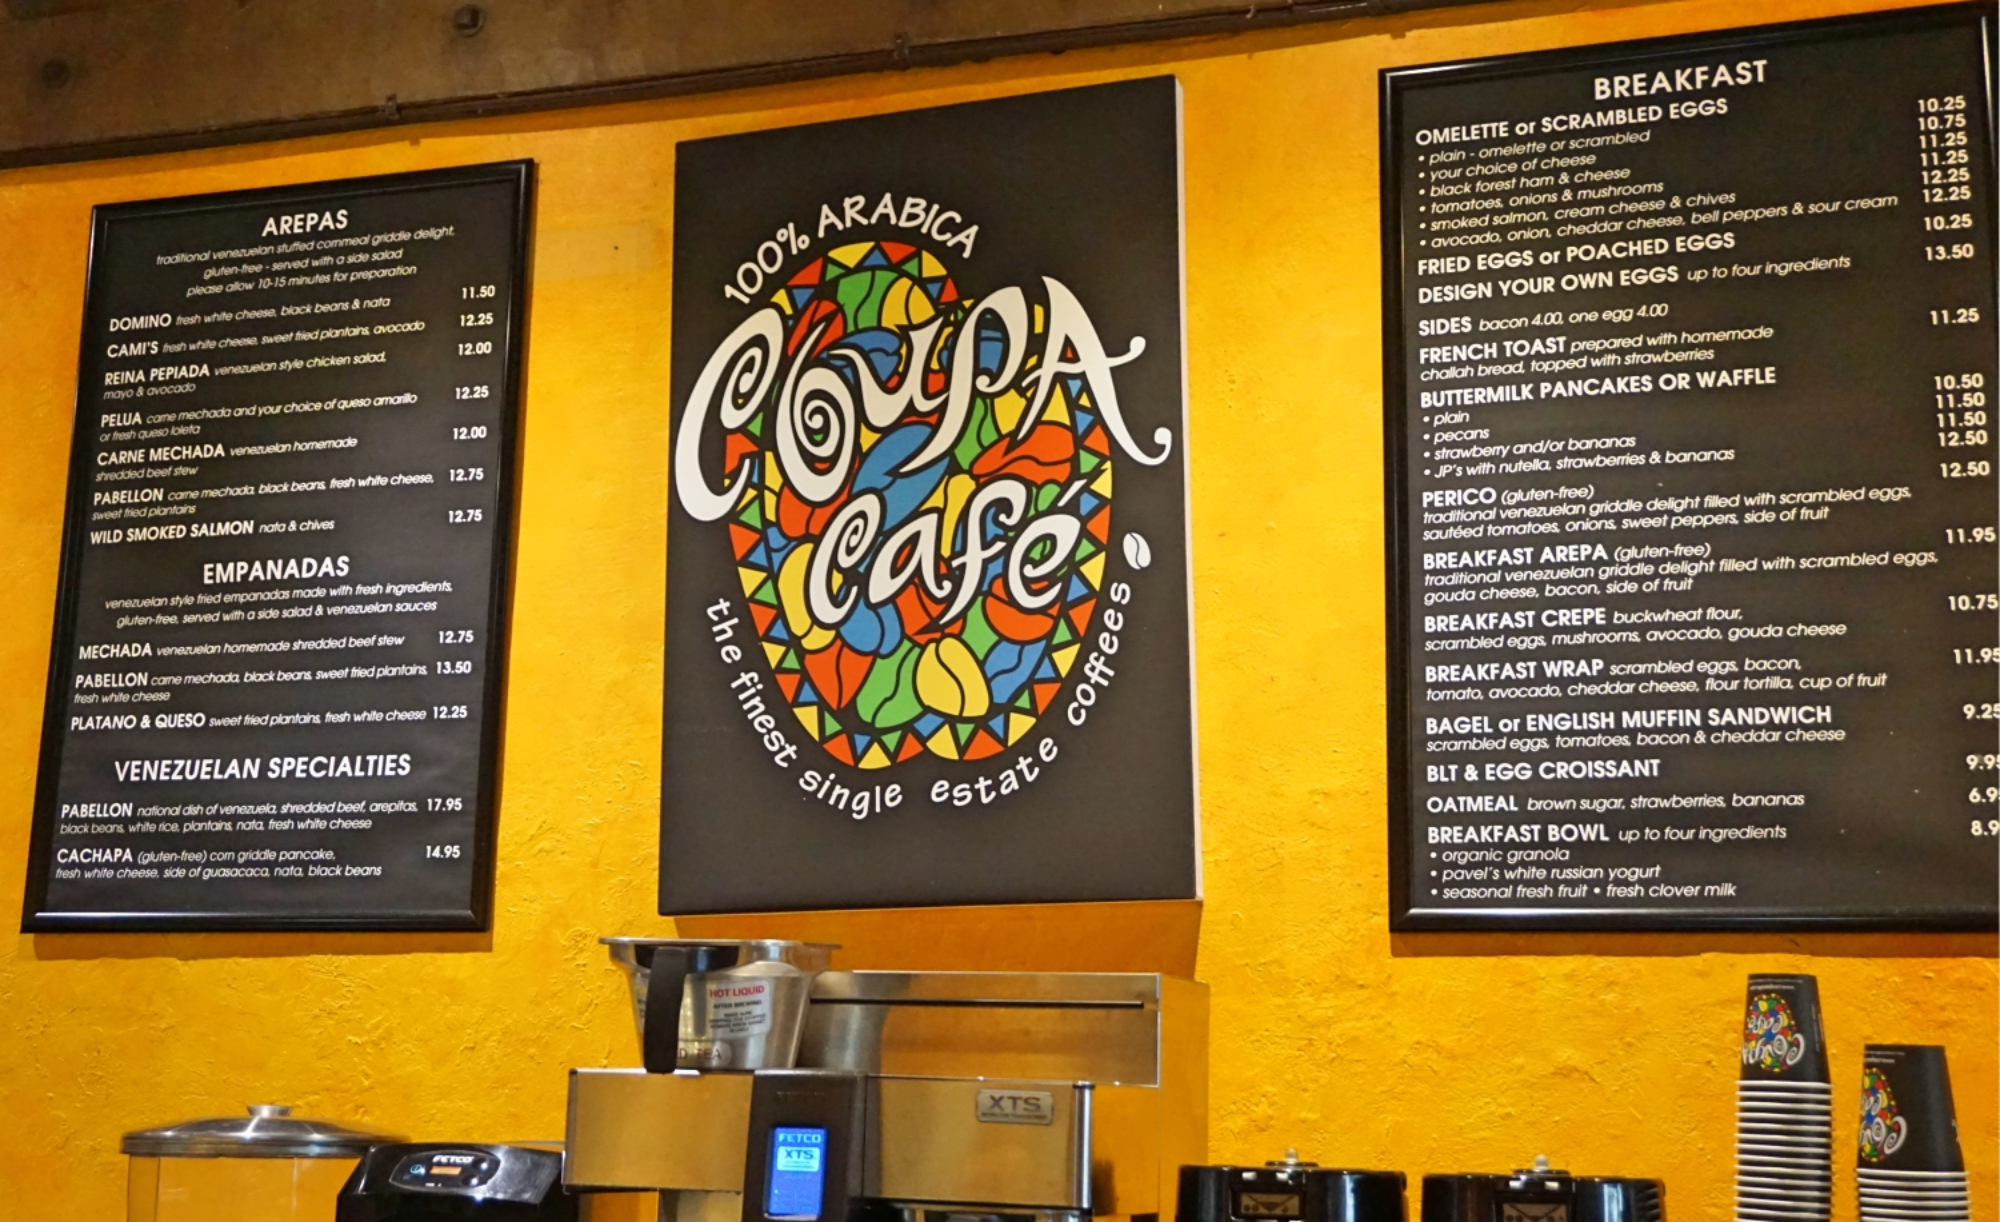 Coupa Cafe, o café tech em Palo Alto